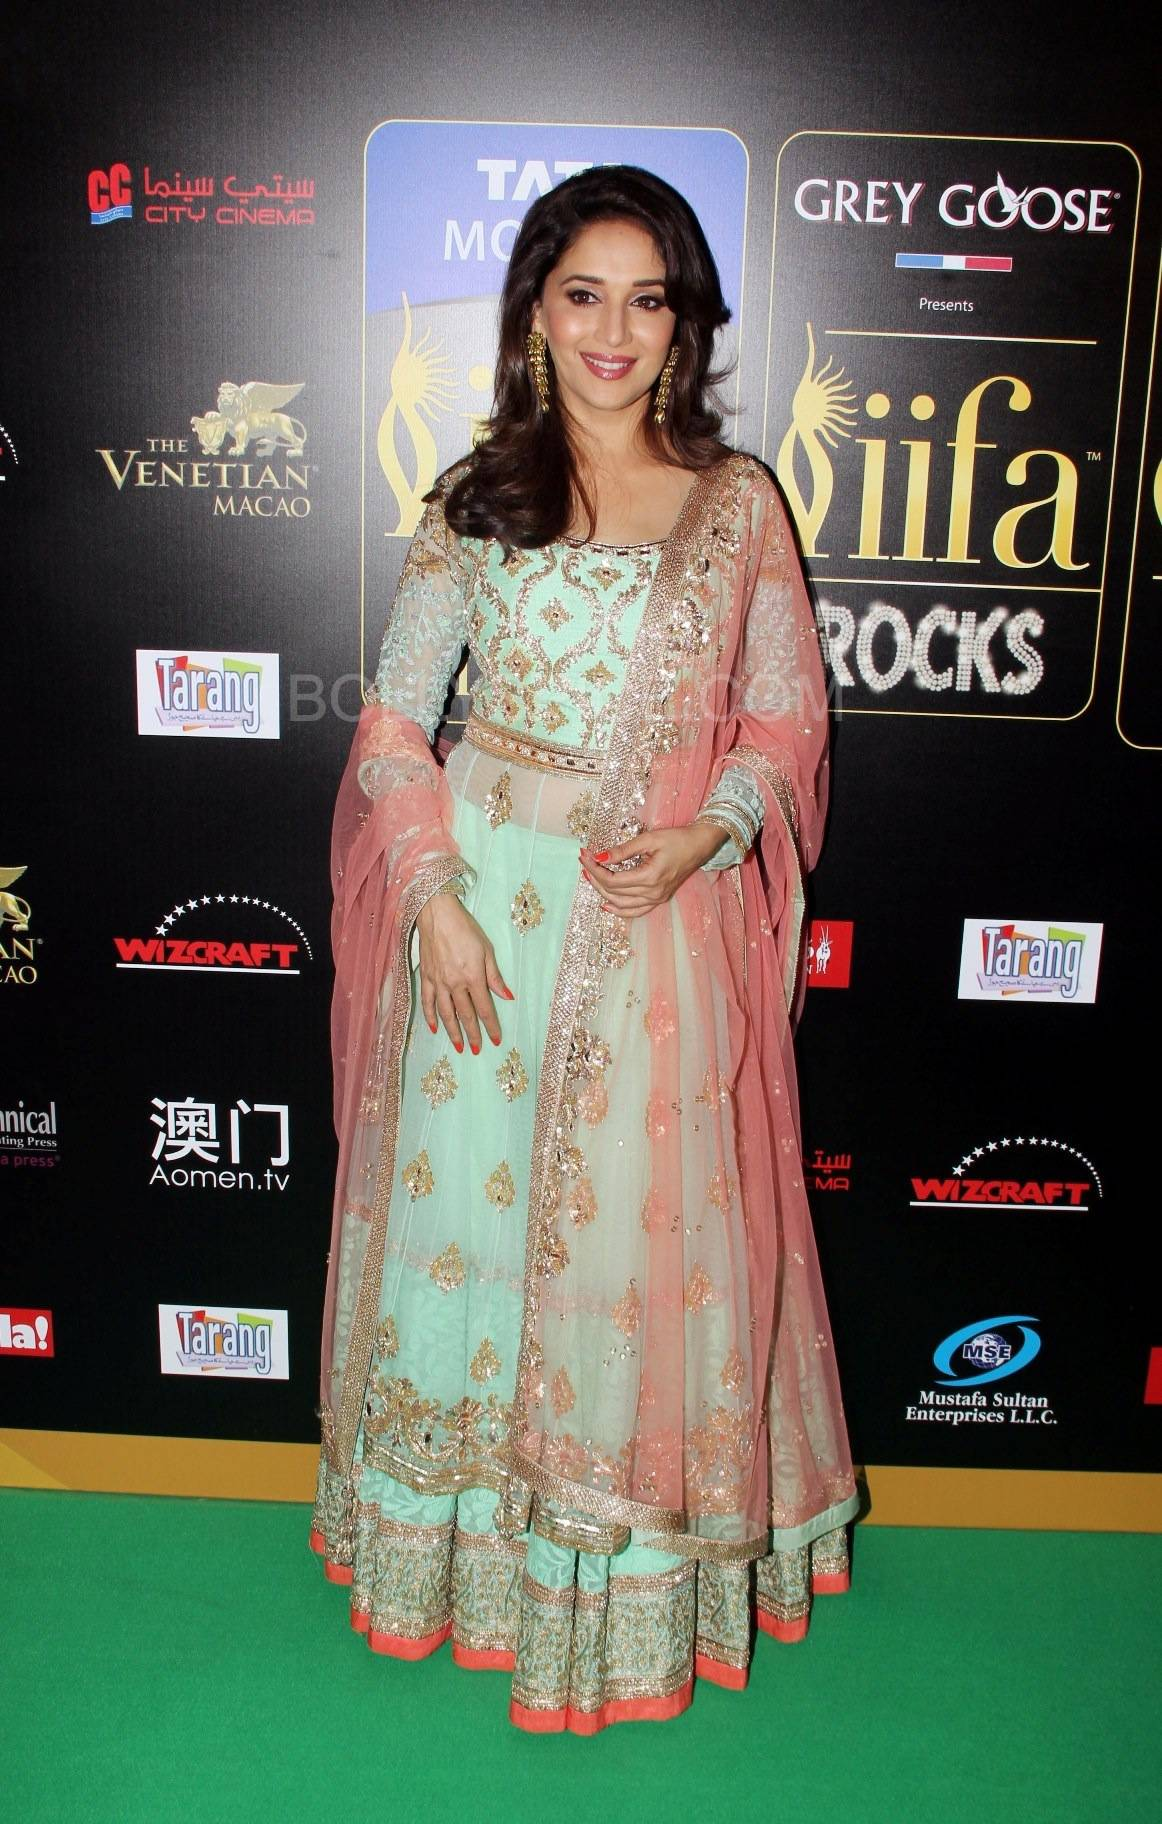 Madhuri Dixit Nene at IIFA Rocks Green carpet More from IIFA Rocks including winners and more Green Carpet pics! Pics added!